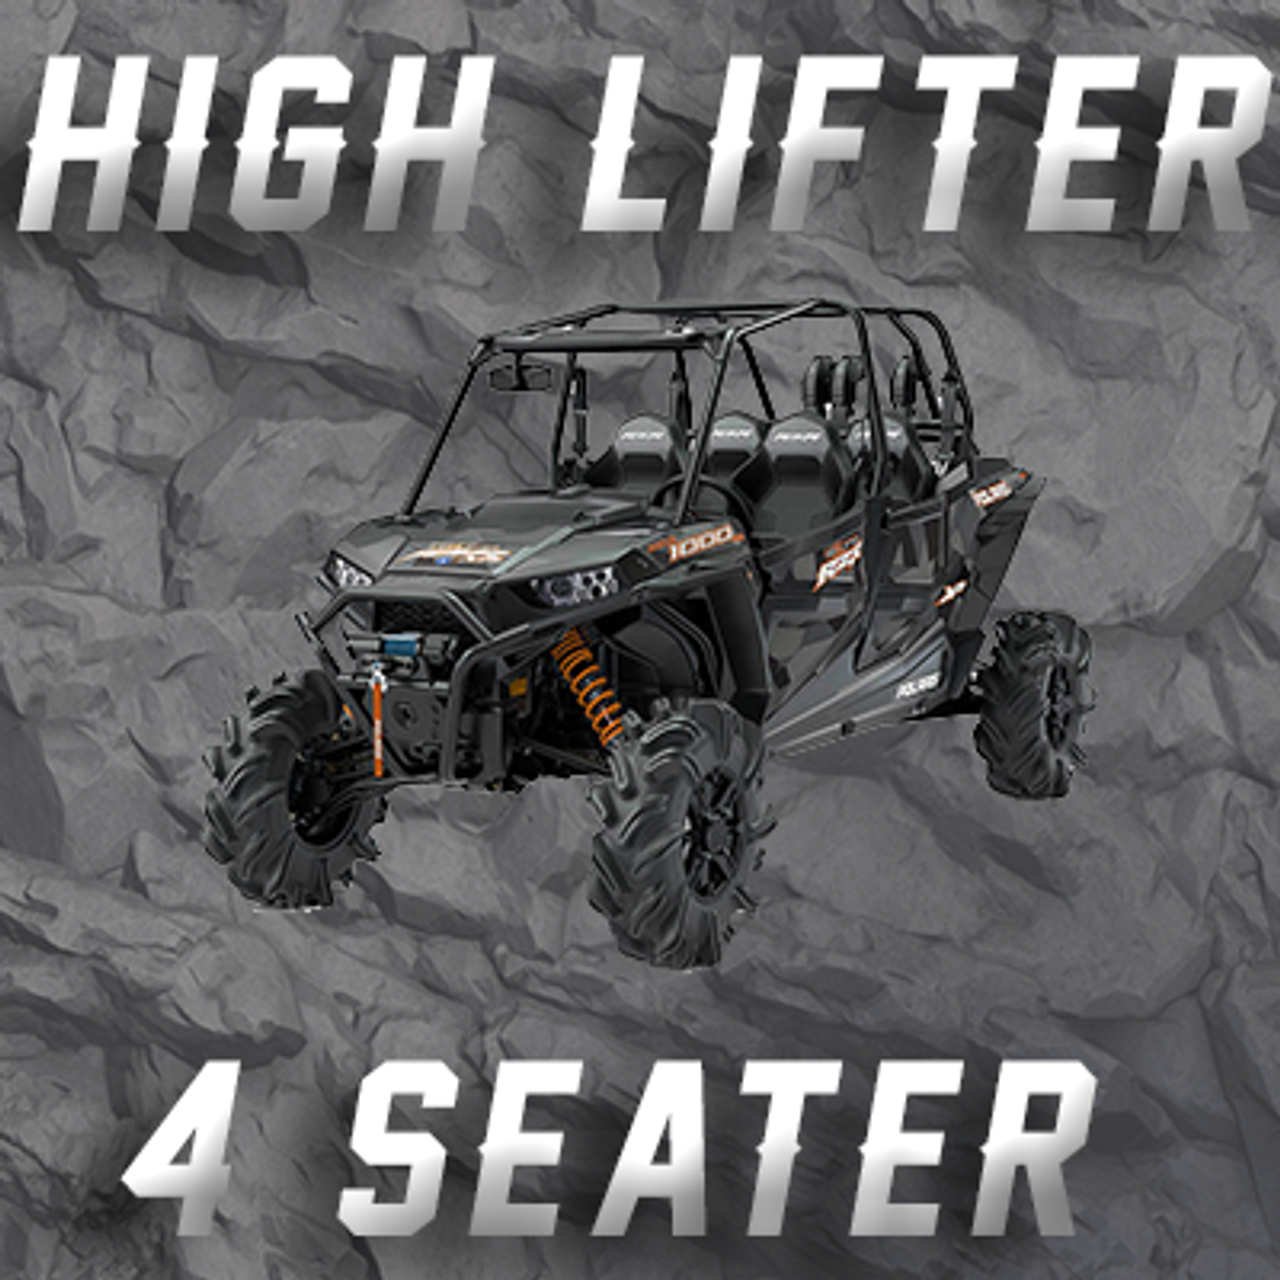 4 SEAT RZR HIGHLIFTER (RZR MODEL) TENDER SPRING SWAP KIT